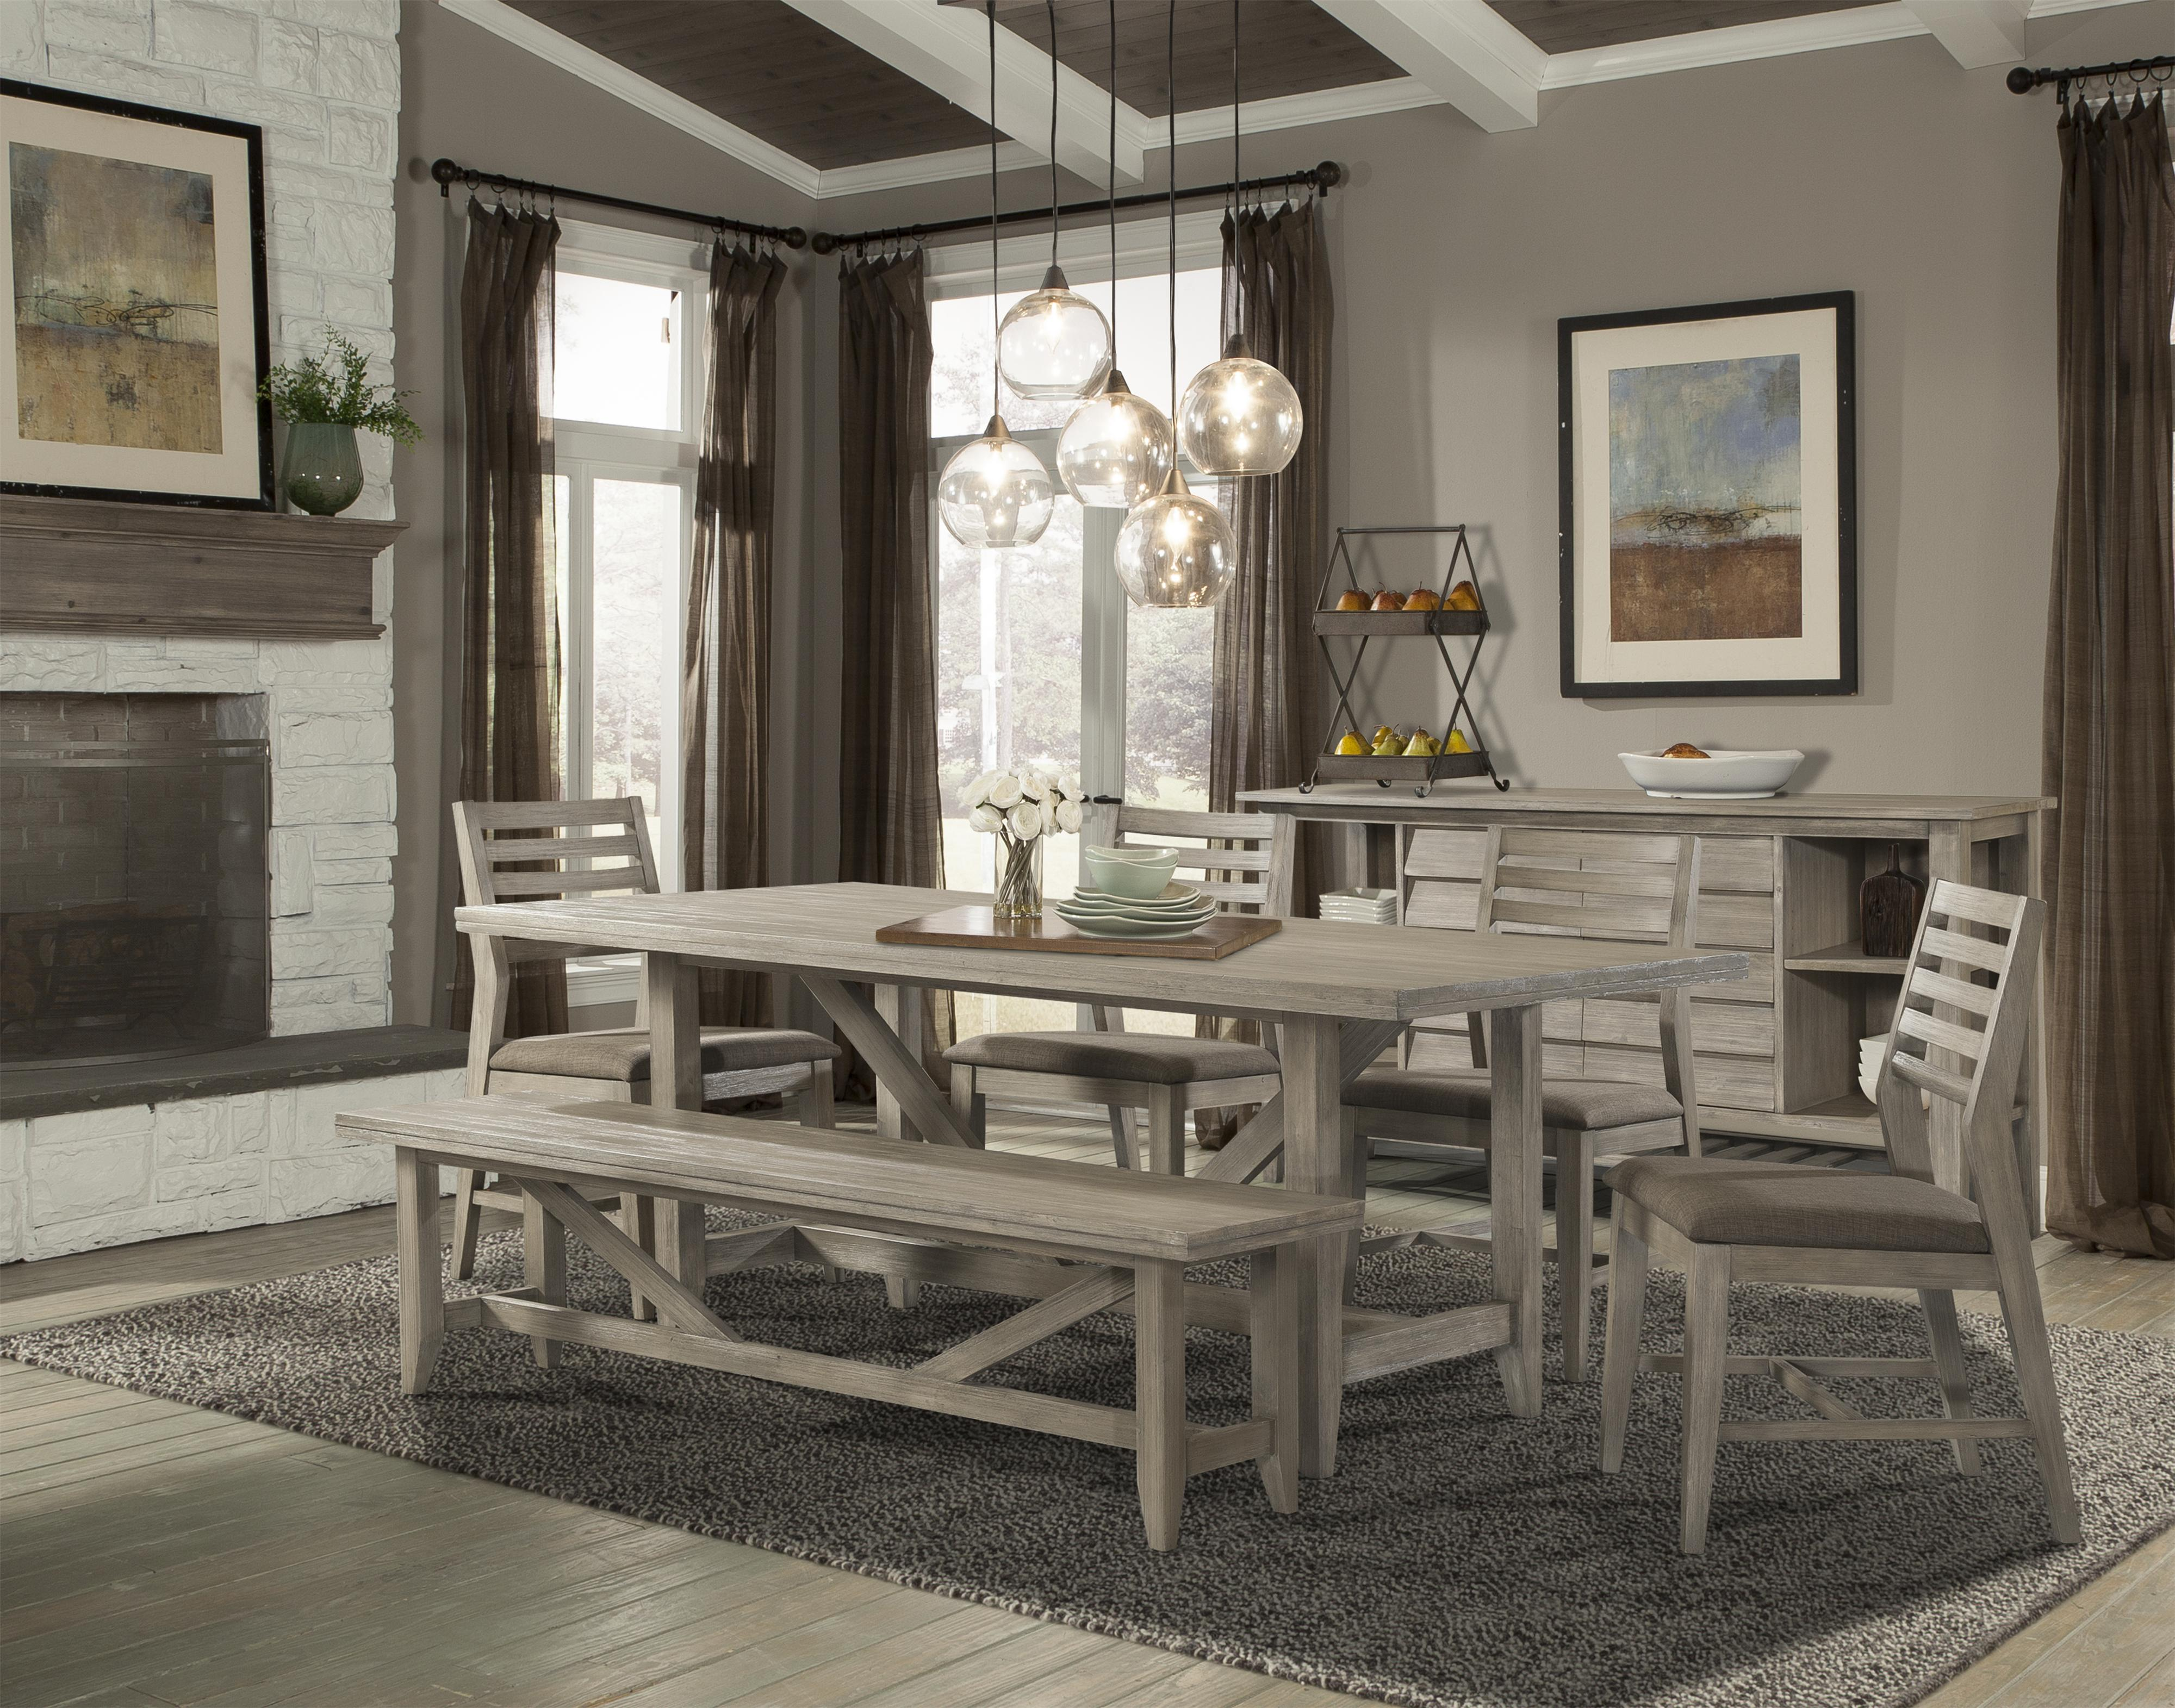 Cresent Fine Furniture Corliss Landing Casual Dining Room Group - Item Number: 5600 Dining Room Group 2